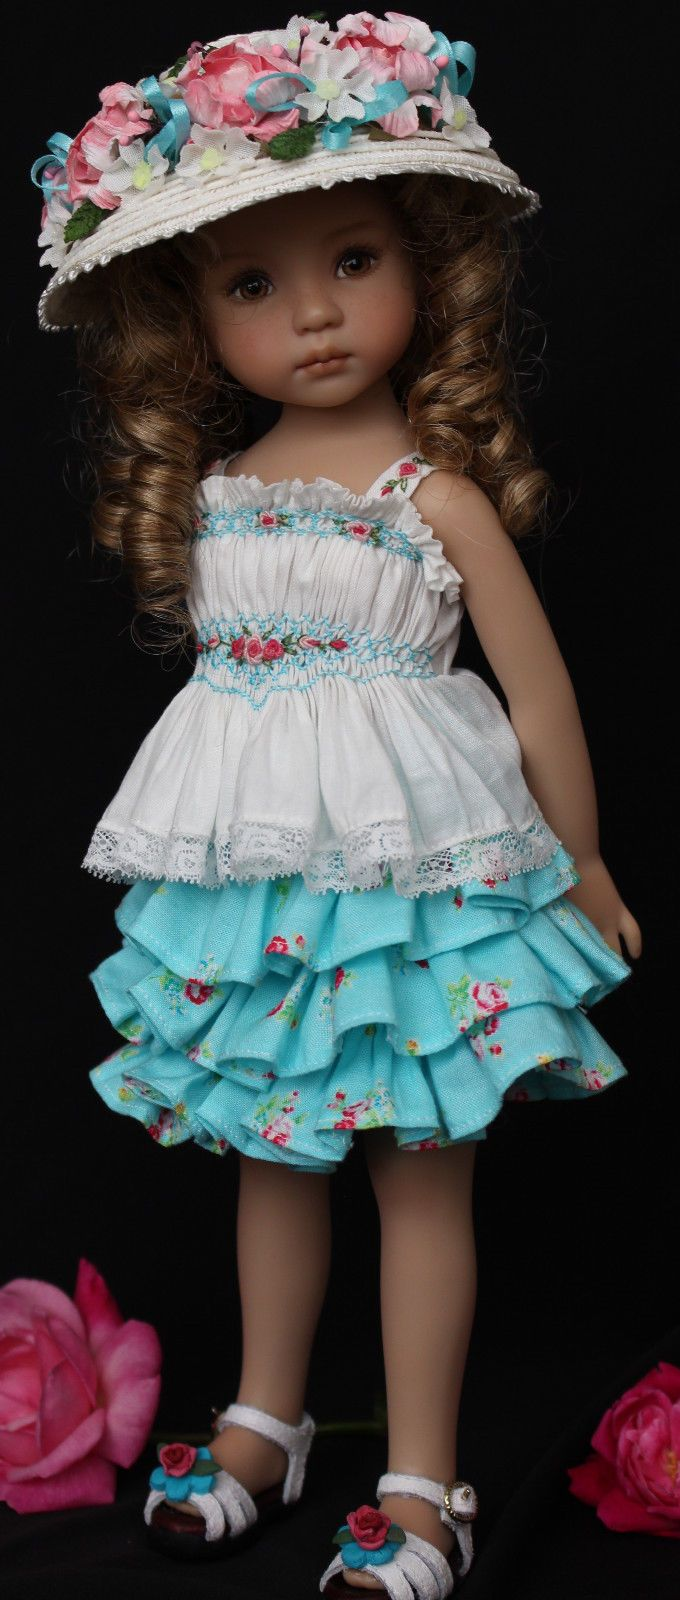 """Smocked Embroidered Outfit for Dianna Effner's 13"""" Little Darling Dolls, straw hat"""